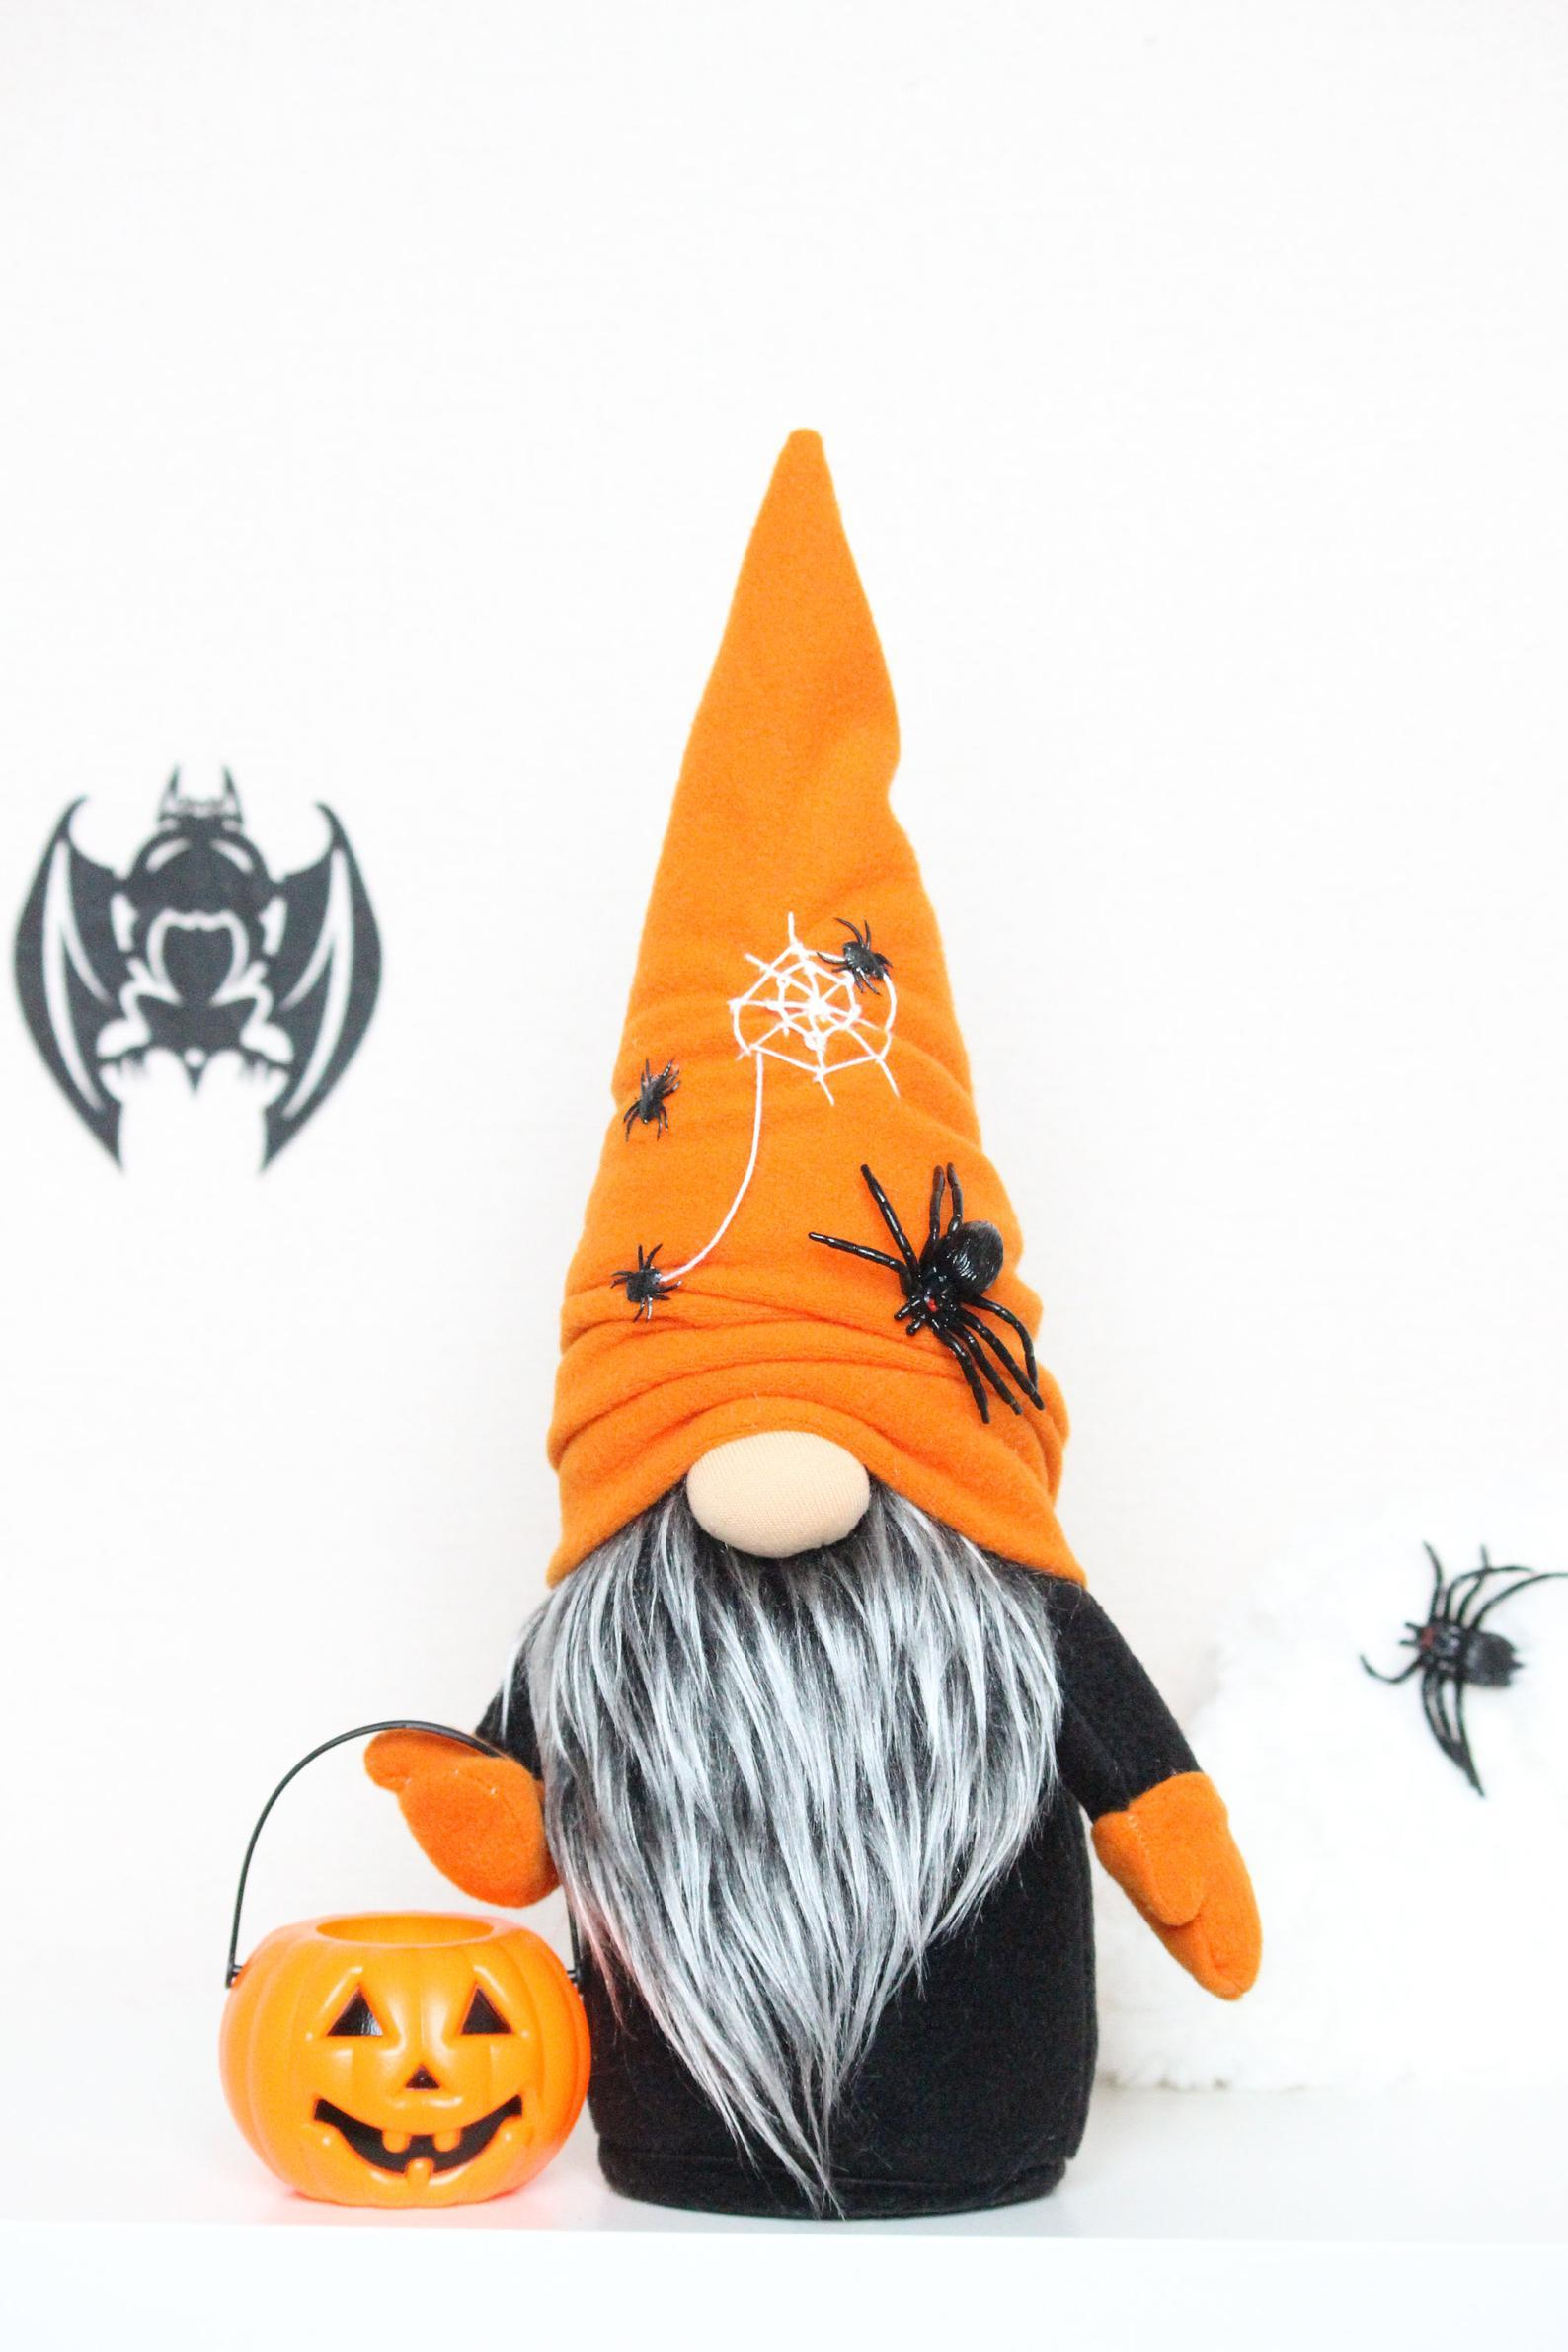 Halloween gnome with pumpkin and spider / Fall gnome / Halloween decor / Hocus Pocus / fall table decor